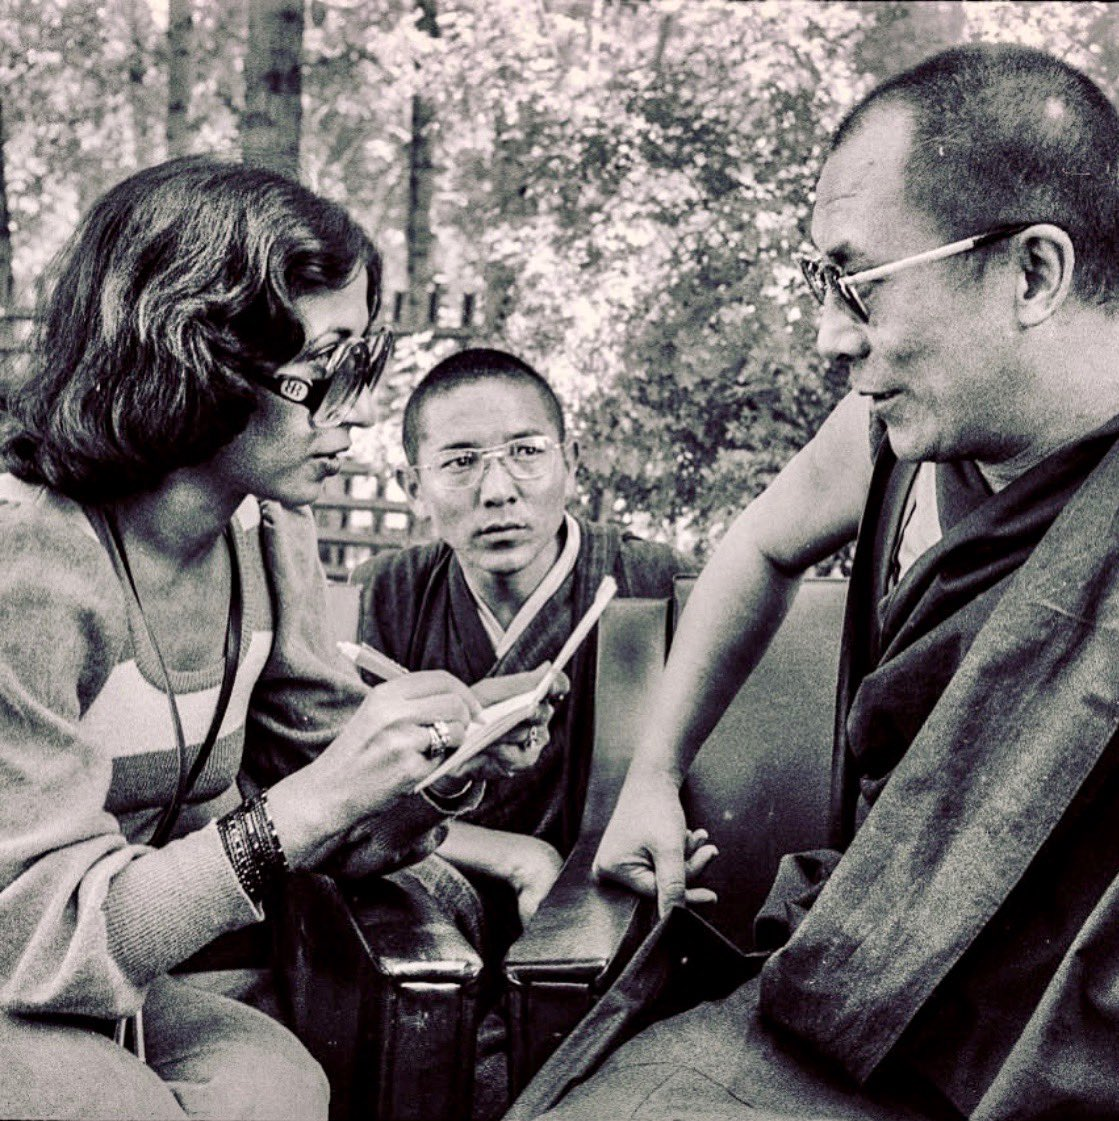 This interview with the Dalai Lama was done a day after Mao died. But I was not allowed political questions because of the Emergency. He laughed and said, 'It's the day after Mao died but if you want to talk about religion that's fine.' We must remember dark times! <br>http://pic.twitter.com/rZ5DlGl61O